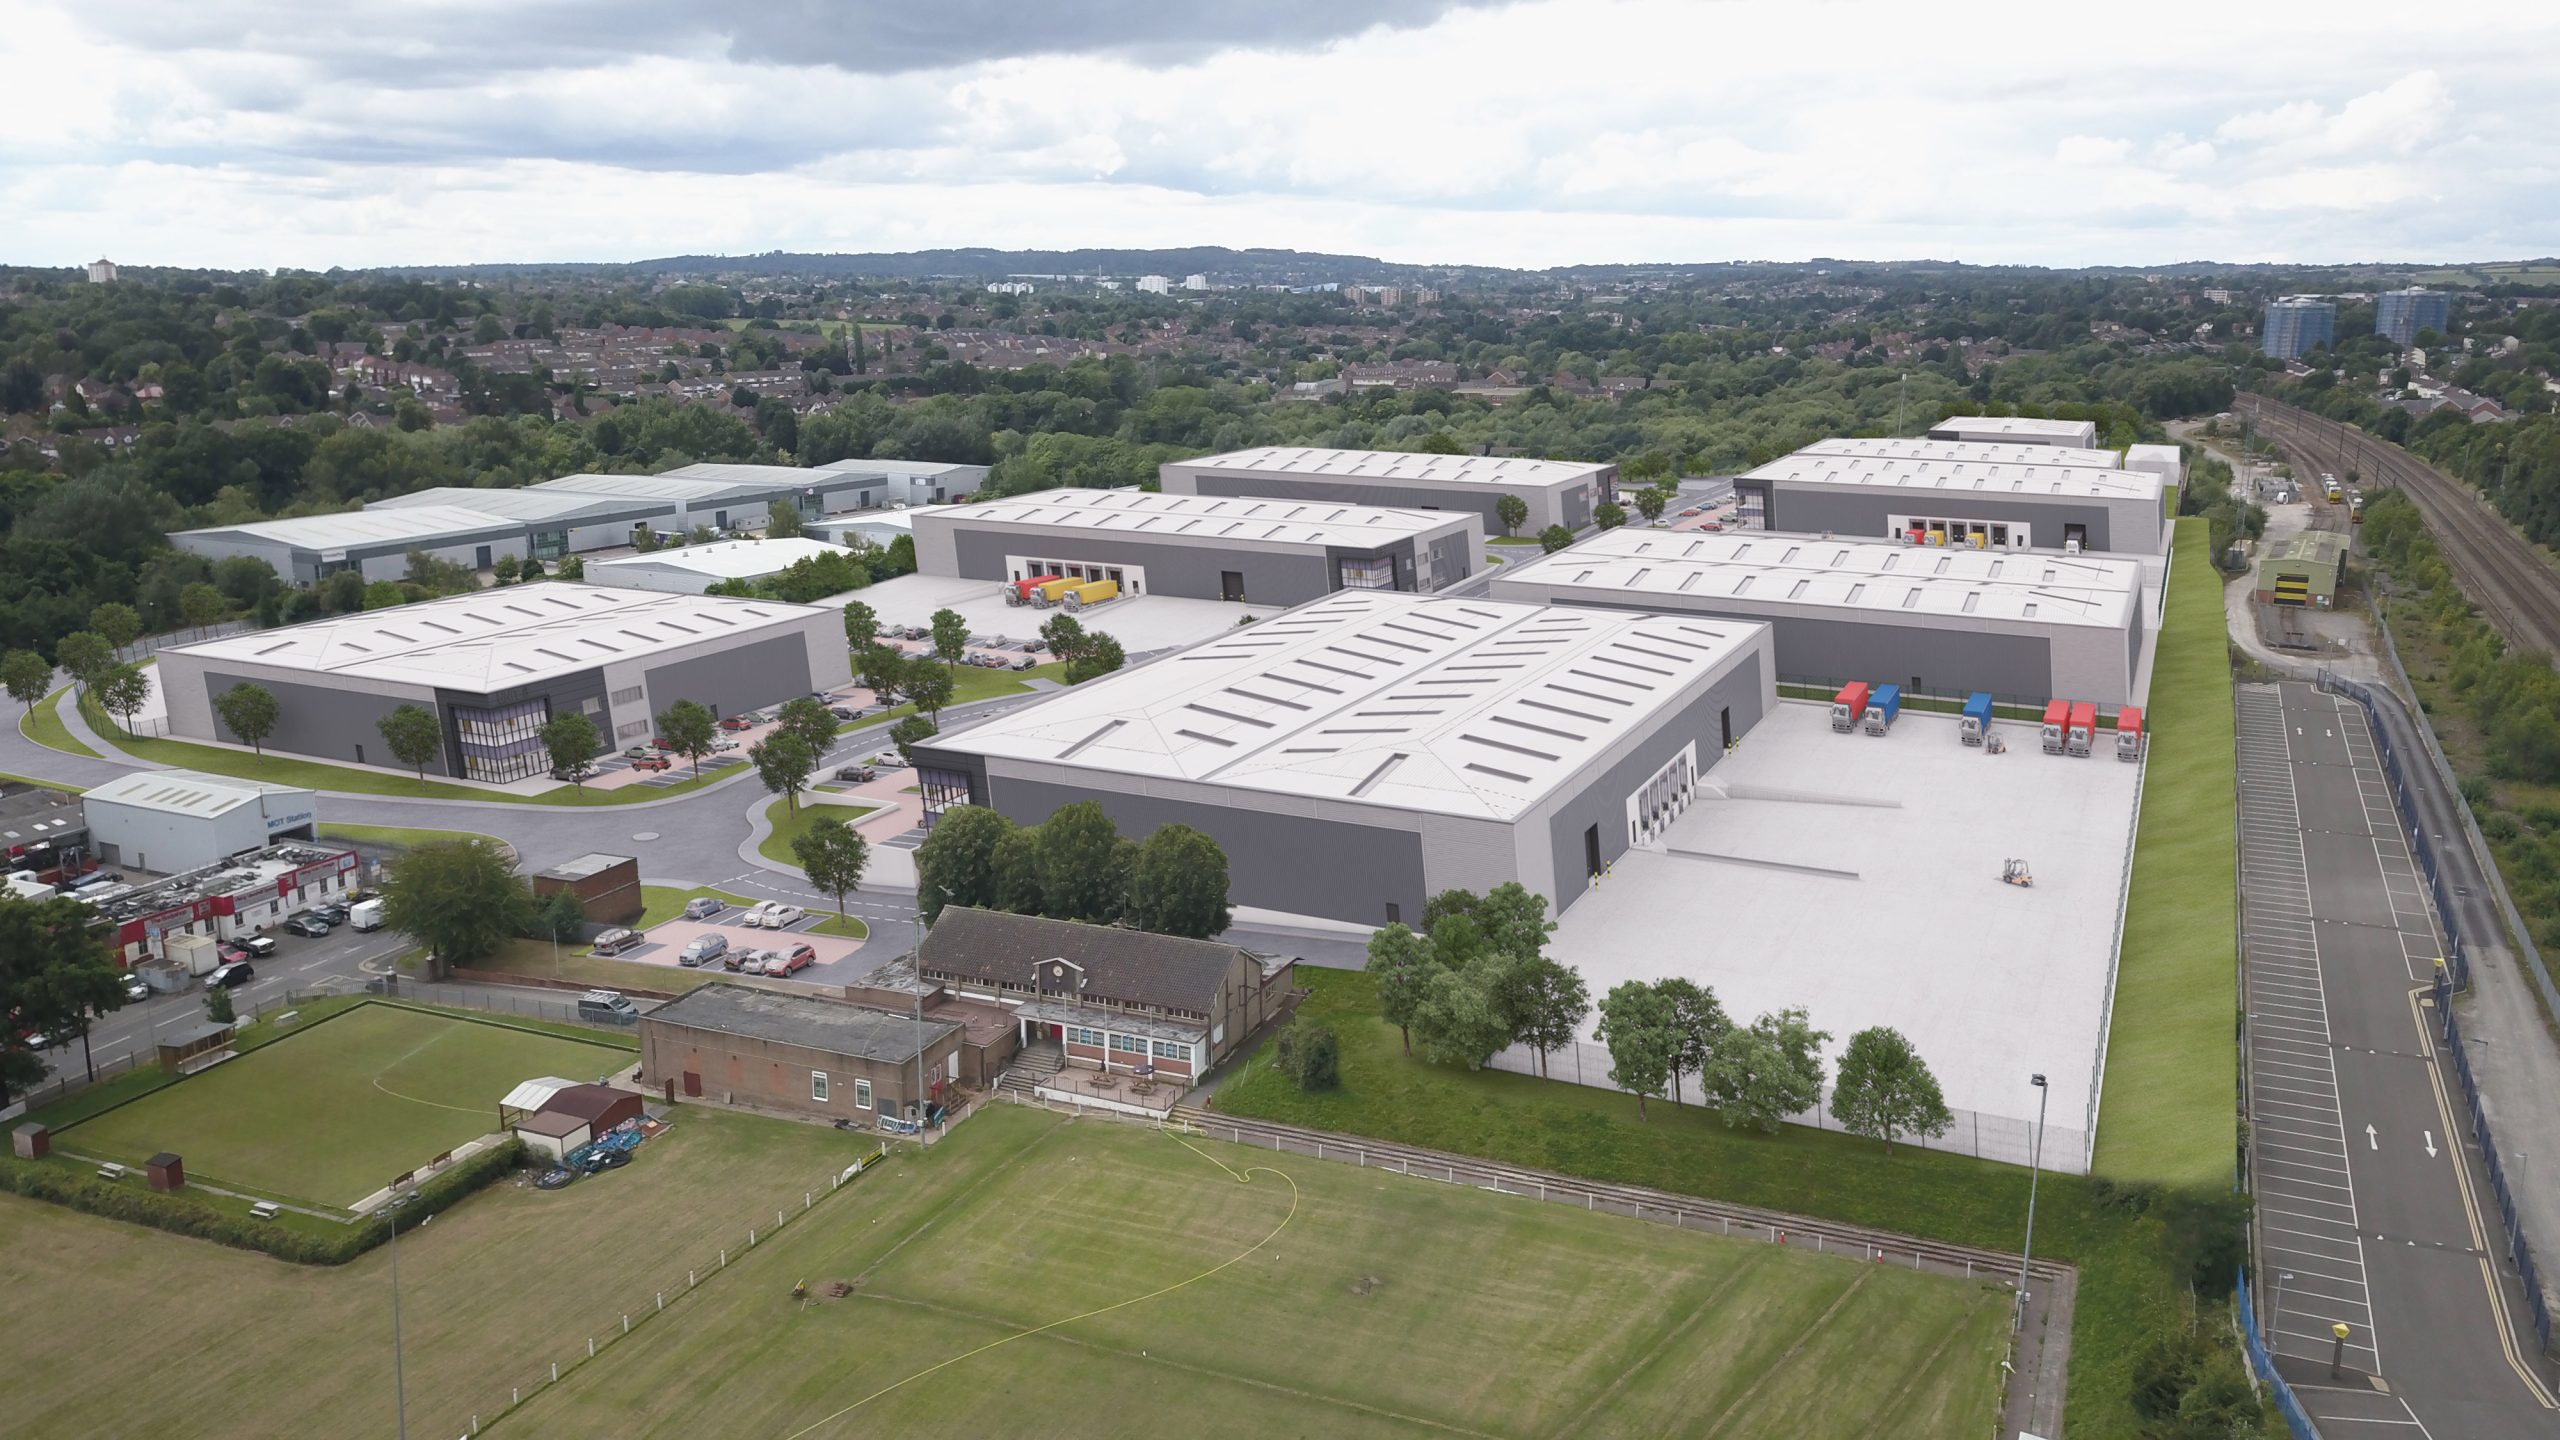 St Francis Group announces major employment plans for Kings Norton, Birmingham with new site purchase.